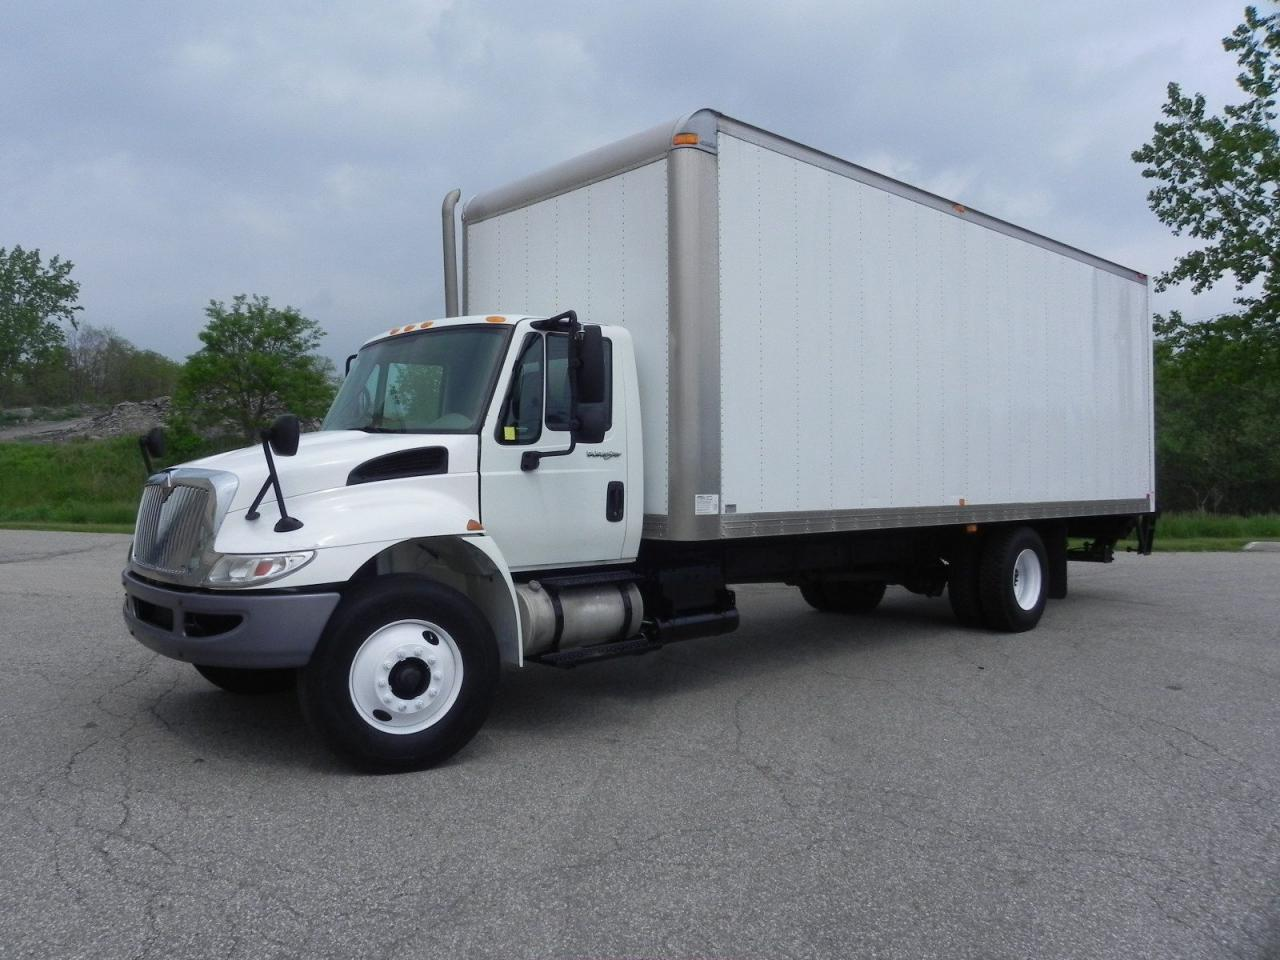 hight resolution of used 2011 international durastar 40s curtain side 26 foot box truck with lift for sale in brantford ontario carpages ca